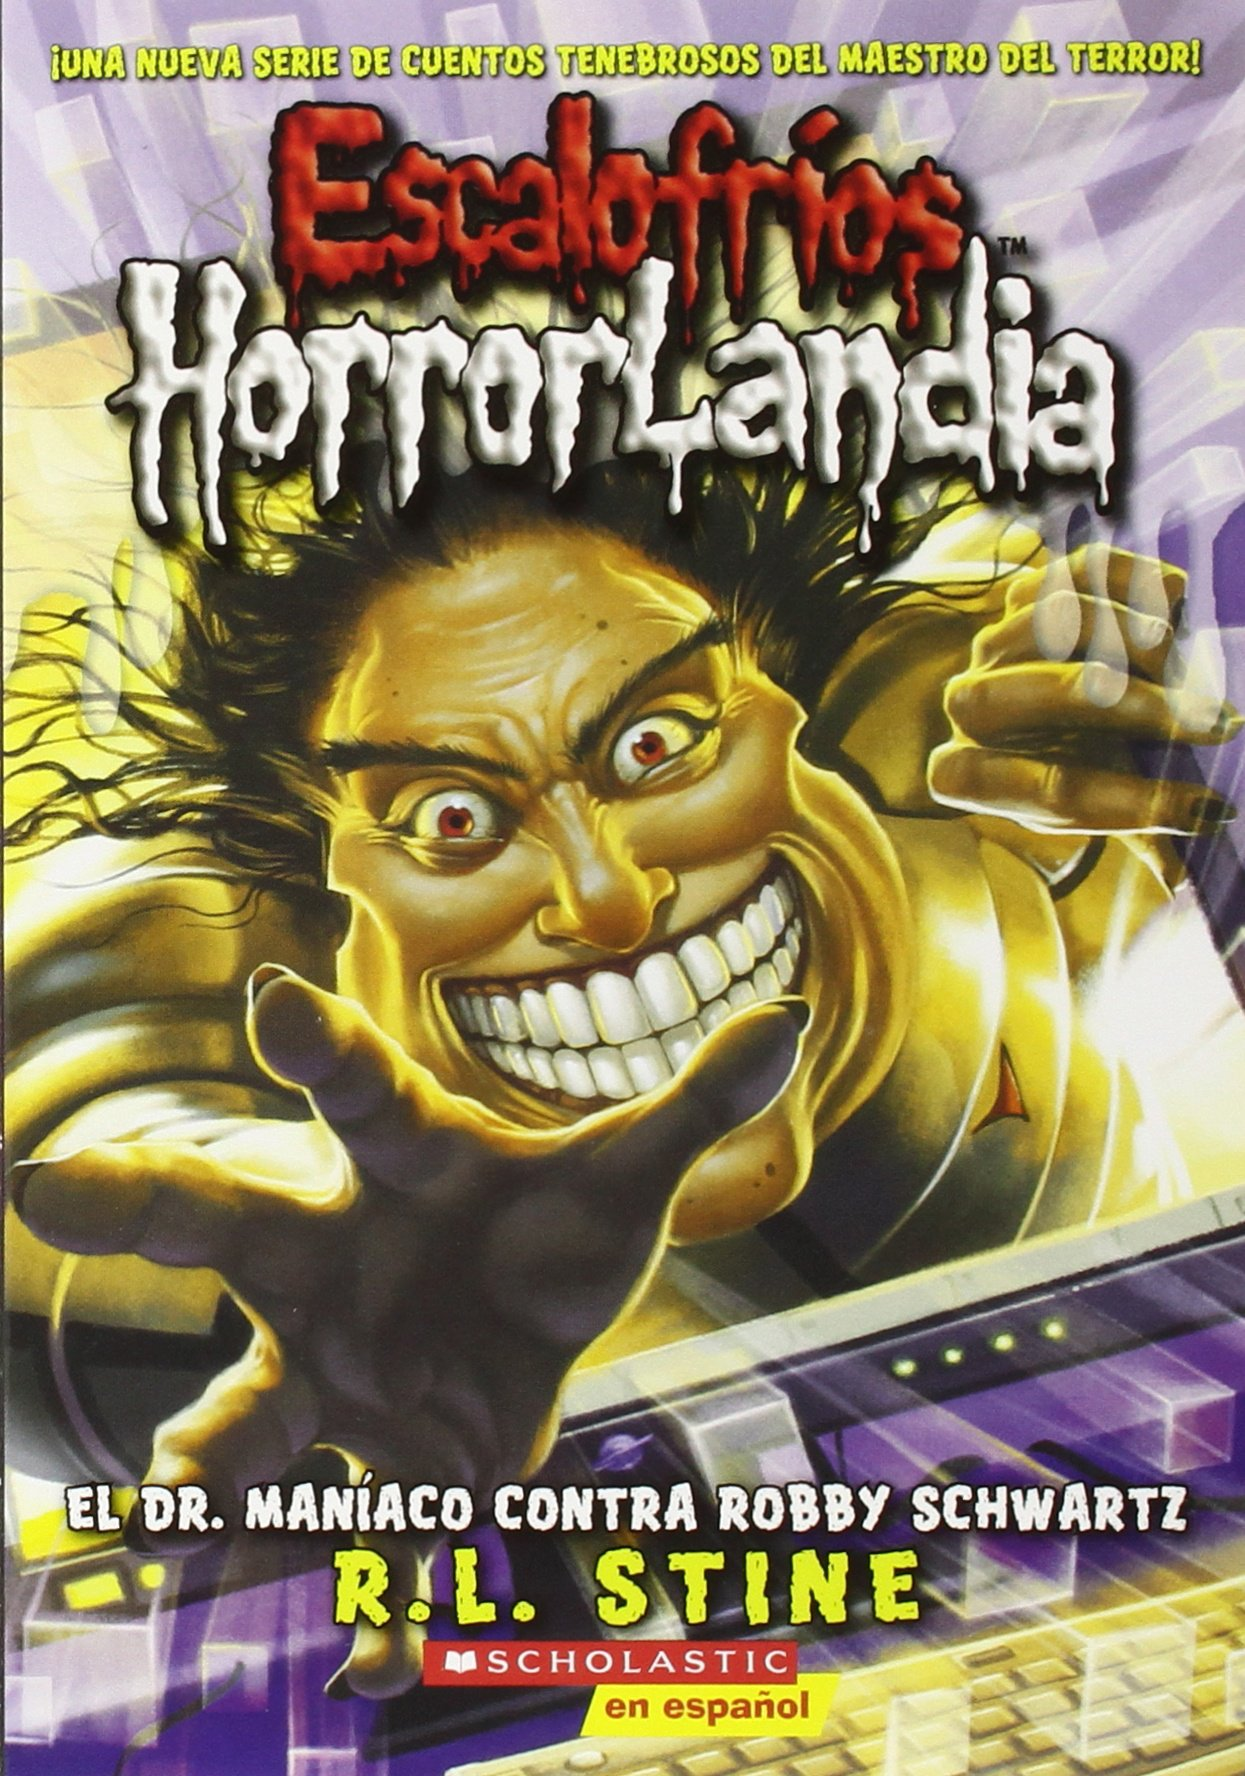 Escalofríos HorrorLandia #5: El Dr. Maníaco contra Robby Schwartz: (Spanish language edition of Goosebumps HorrorLand #5: Dr. Maniac vs. Robby Schwartz) (Spanish Edition) by Scholastic